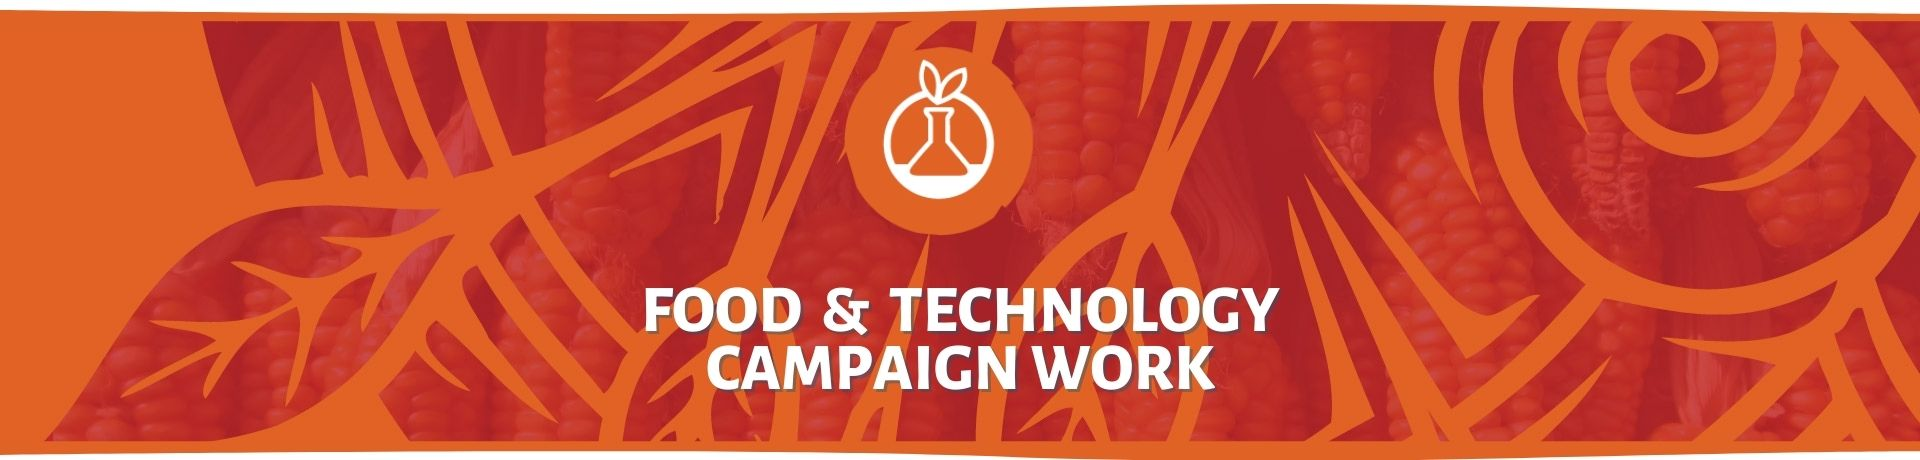 Food & Technology Campaign Work